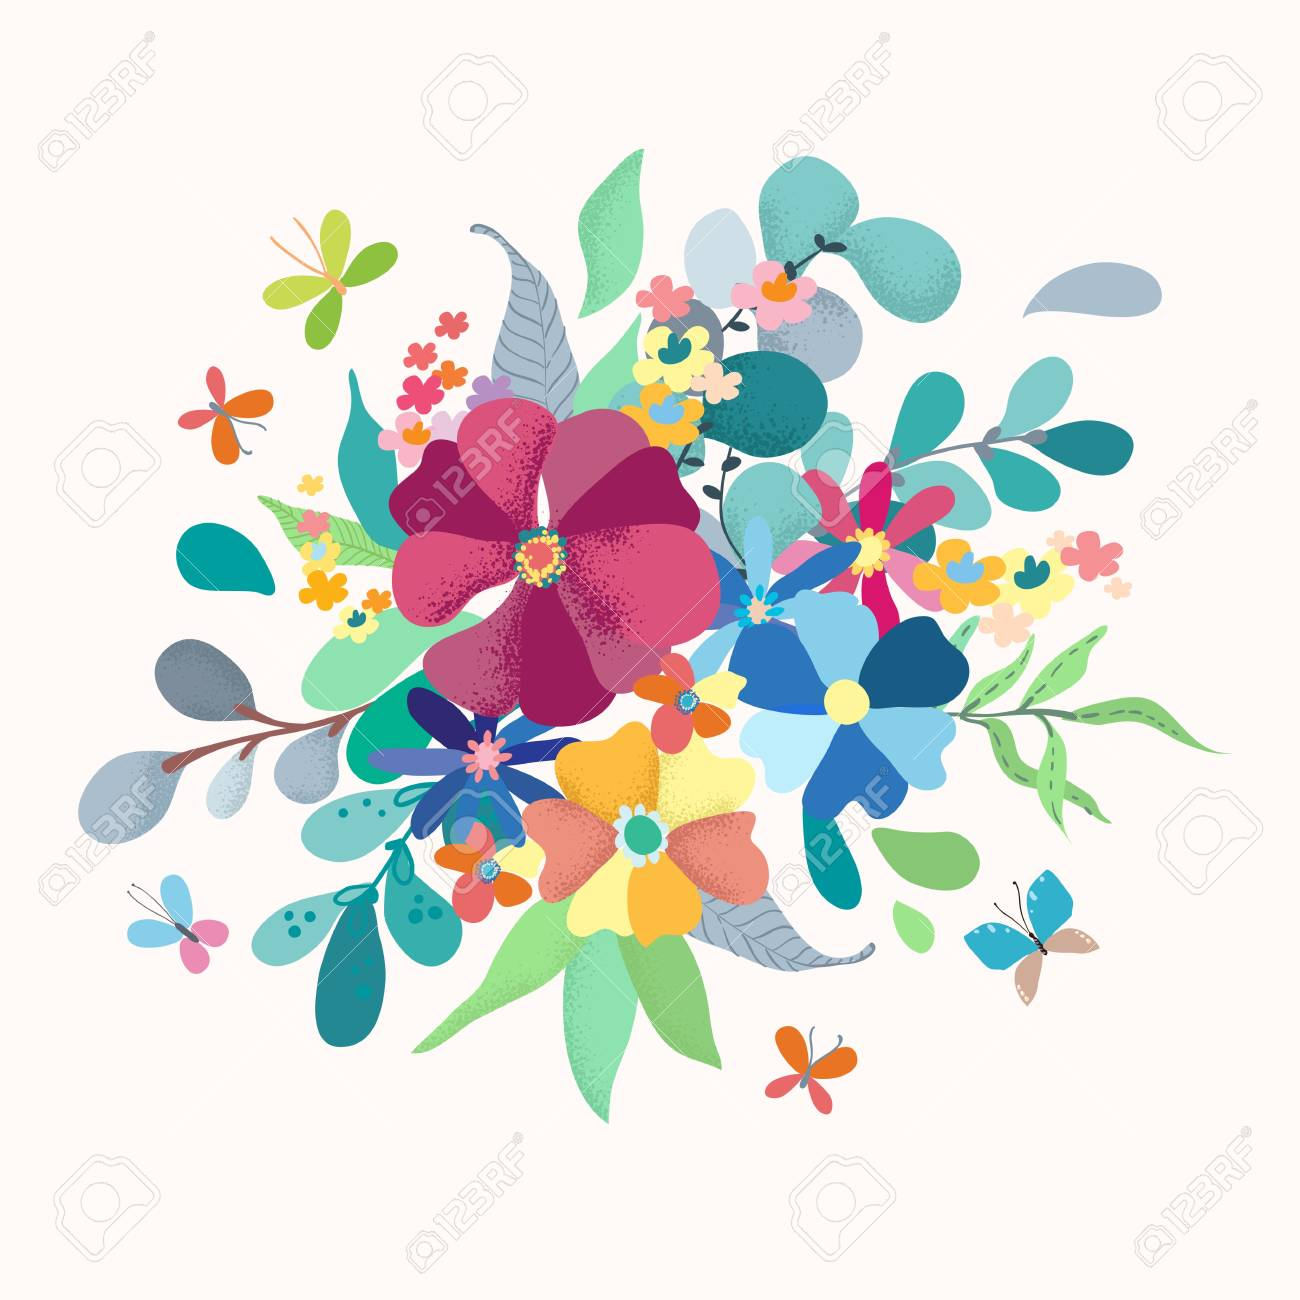 Floral Bouquet With Simple Color Flowers For Beautiful Card Design Royalty Free Cliparts Vectors And Stock Illustration Image 97307443,Royal Blue Wedding Cupcake Designs